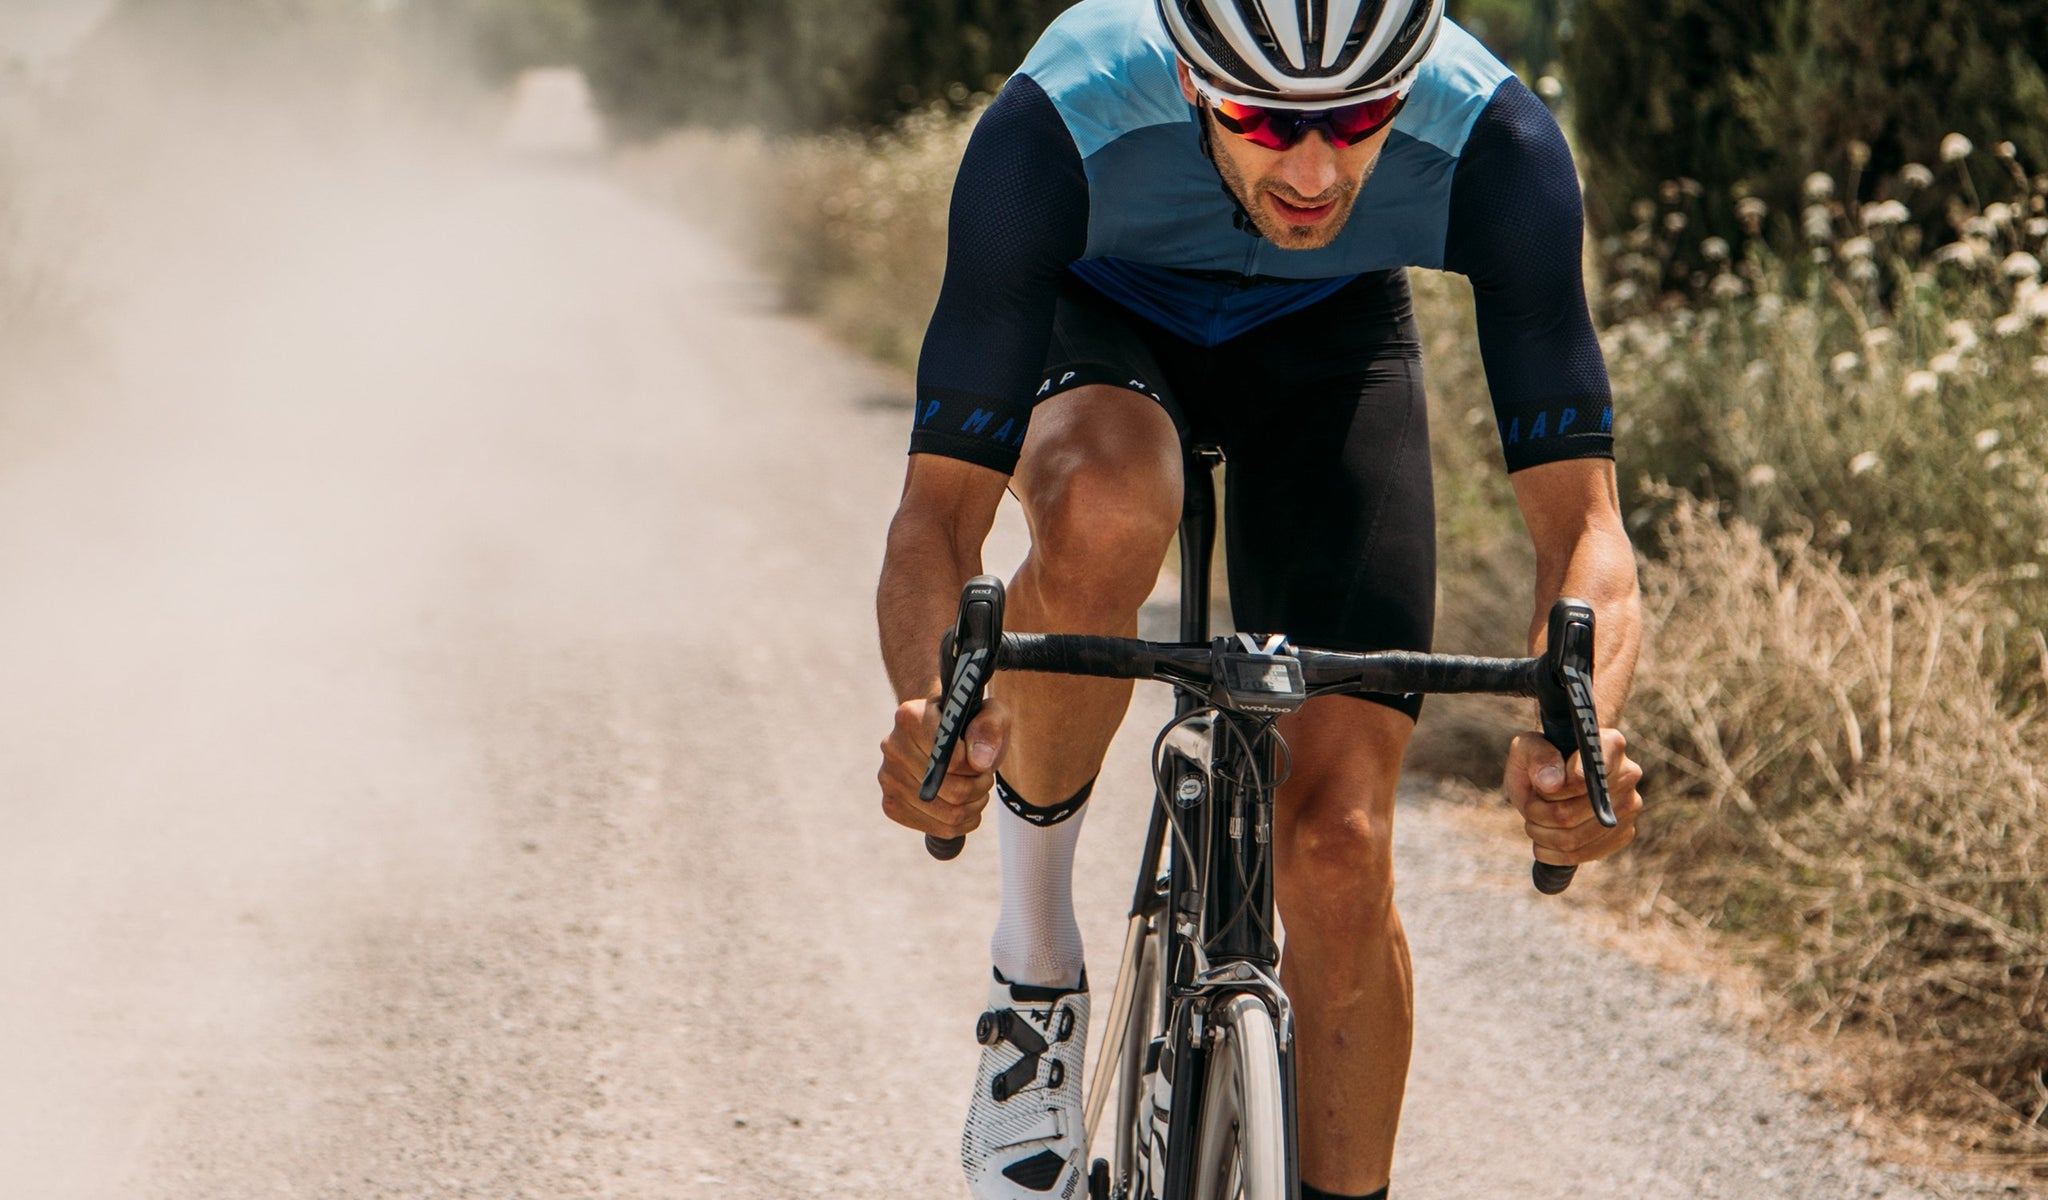 MAAP Pro Air Cycling Socks in White/Black for riding in warm weather conditions.